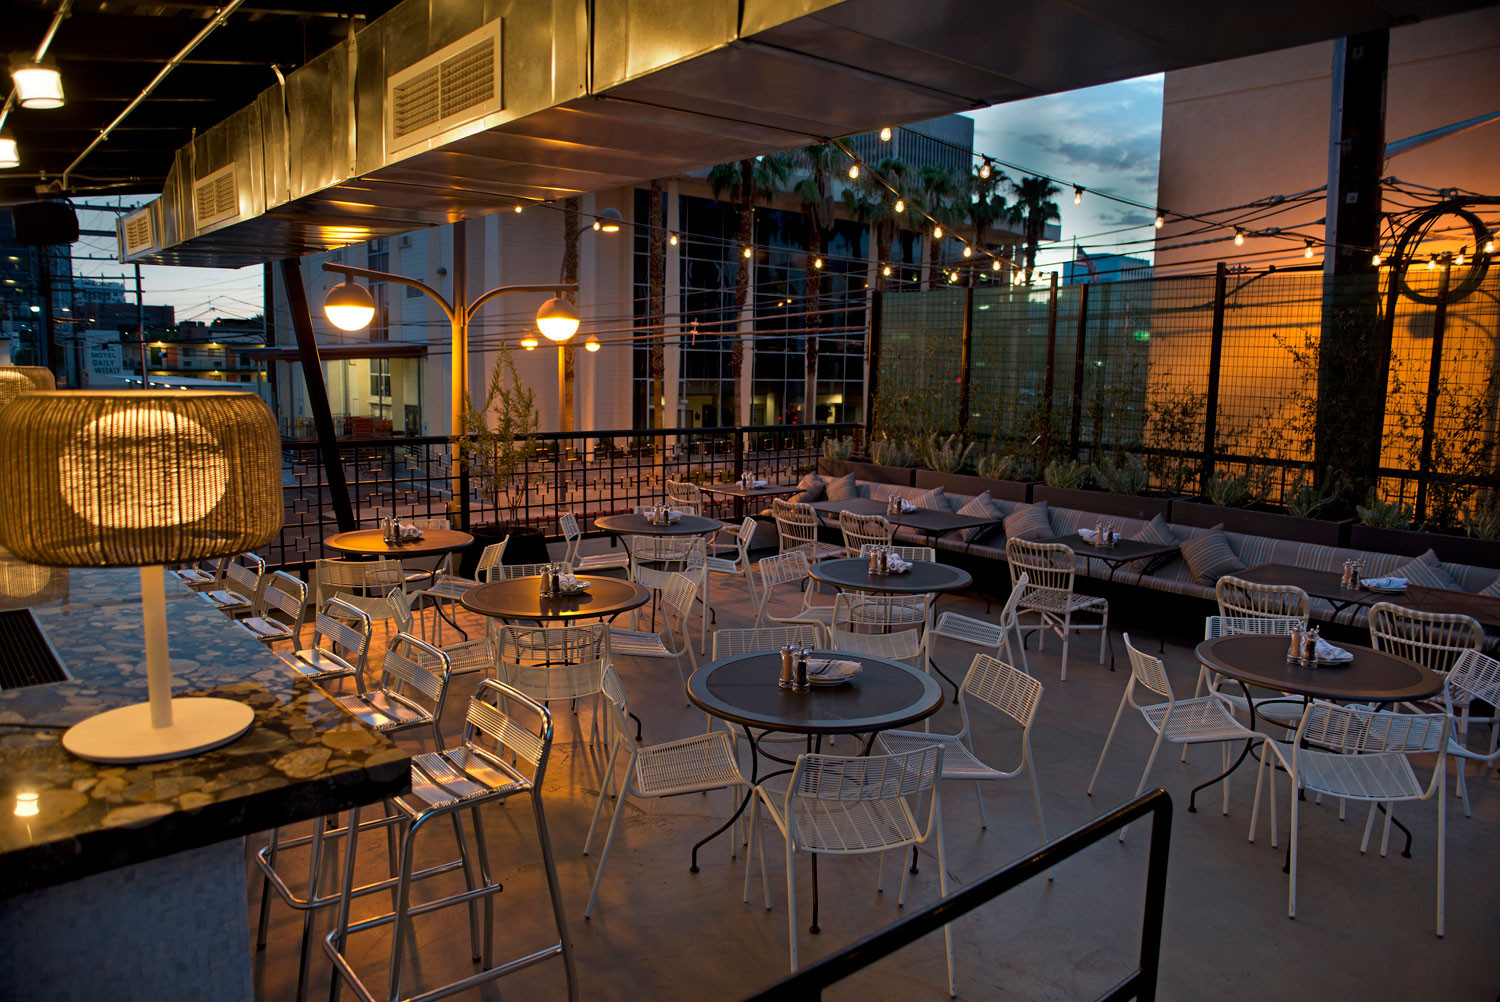 Best ideas about The Patio Restaurant . Save or Pin 'Tis the season for outdoor dining in Vegas – Las Vegas Blogs Now.